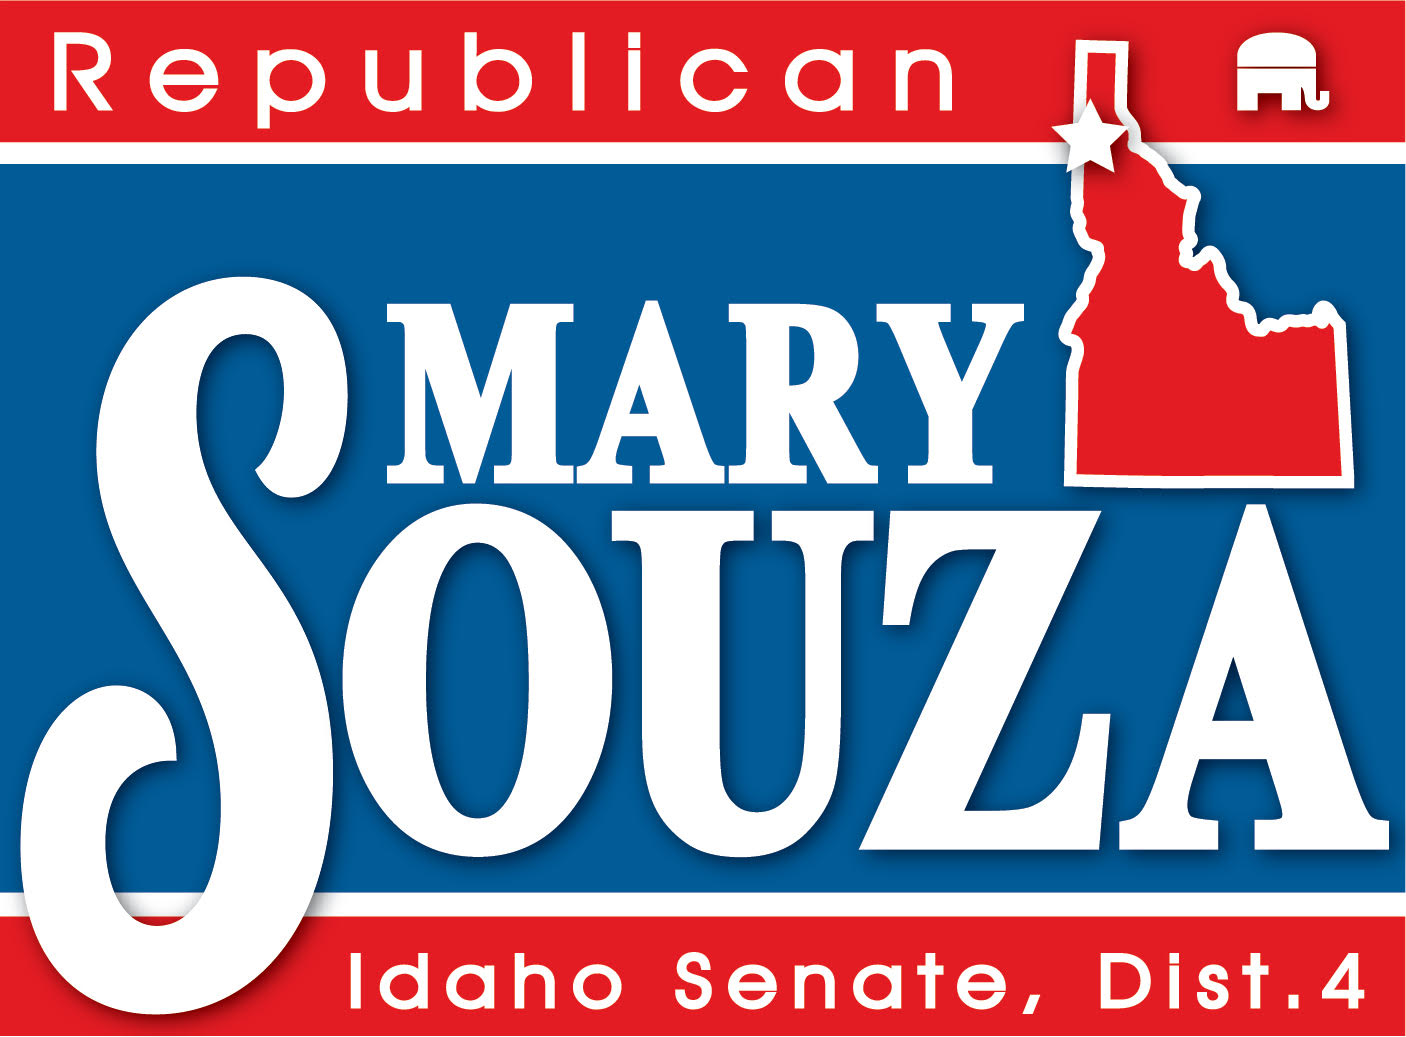 Mary Souza for Idaho